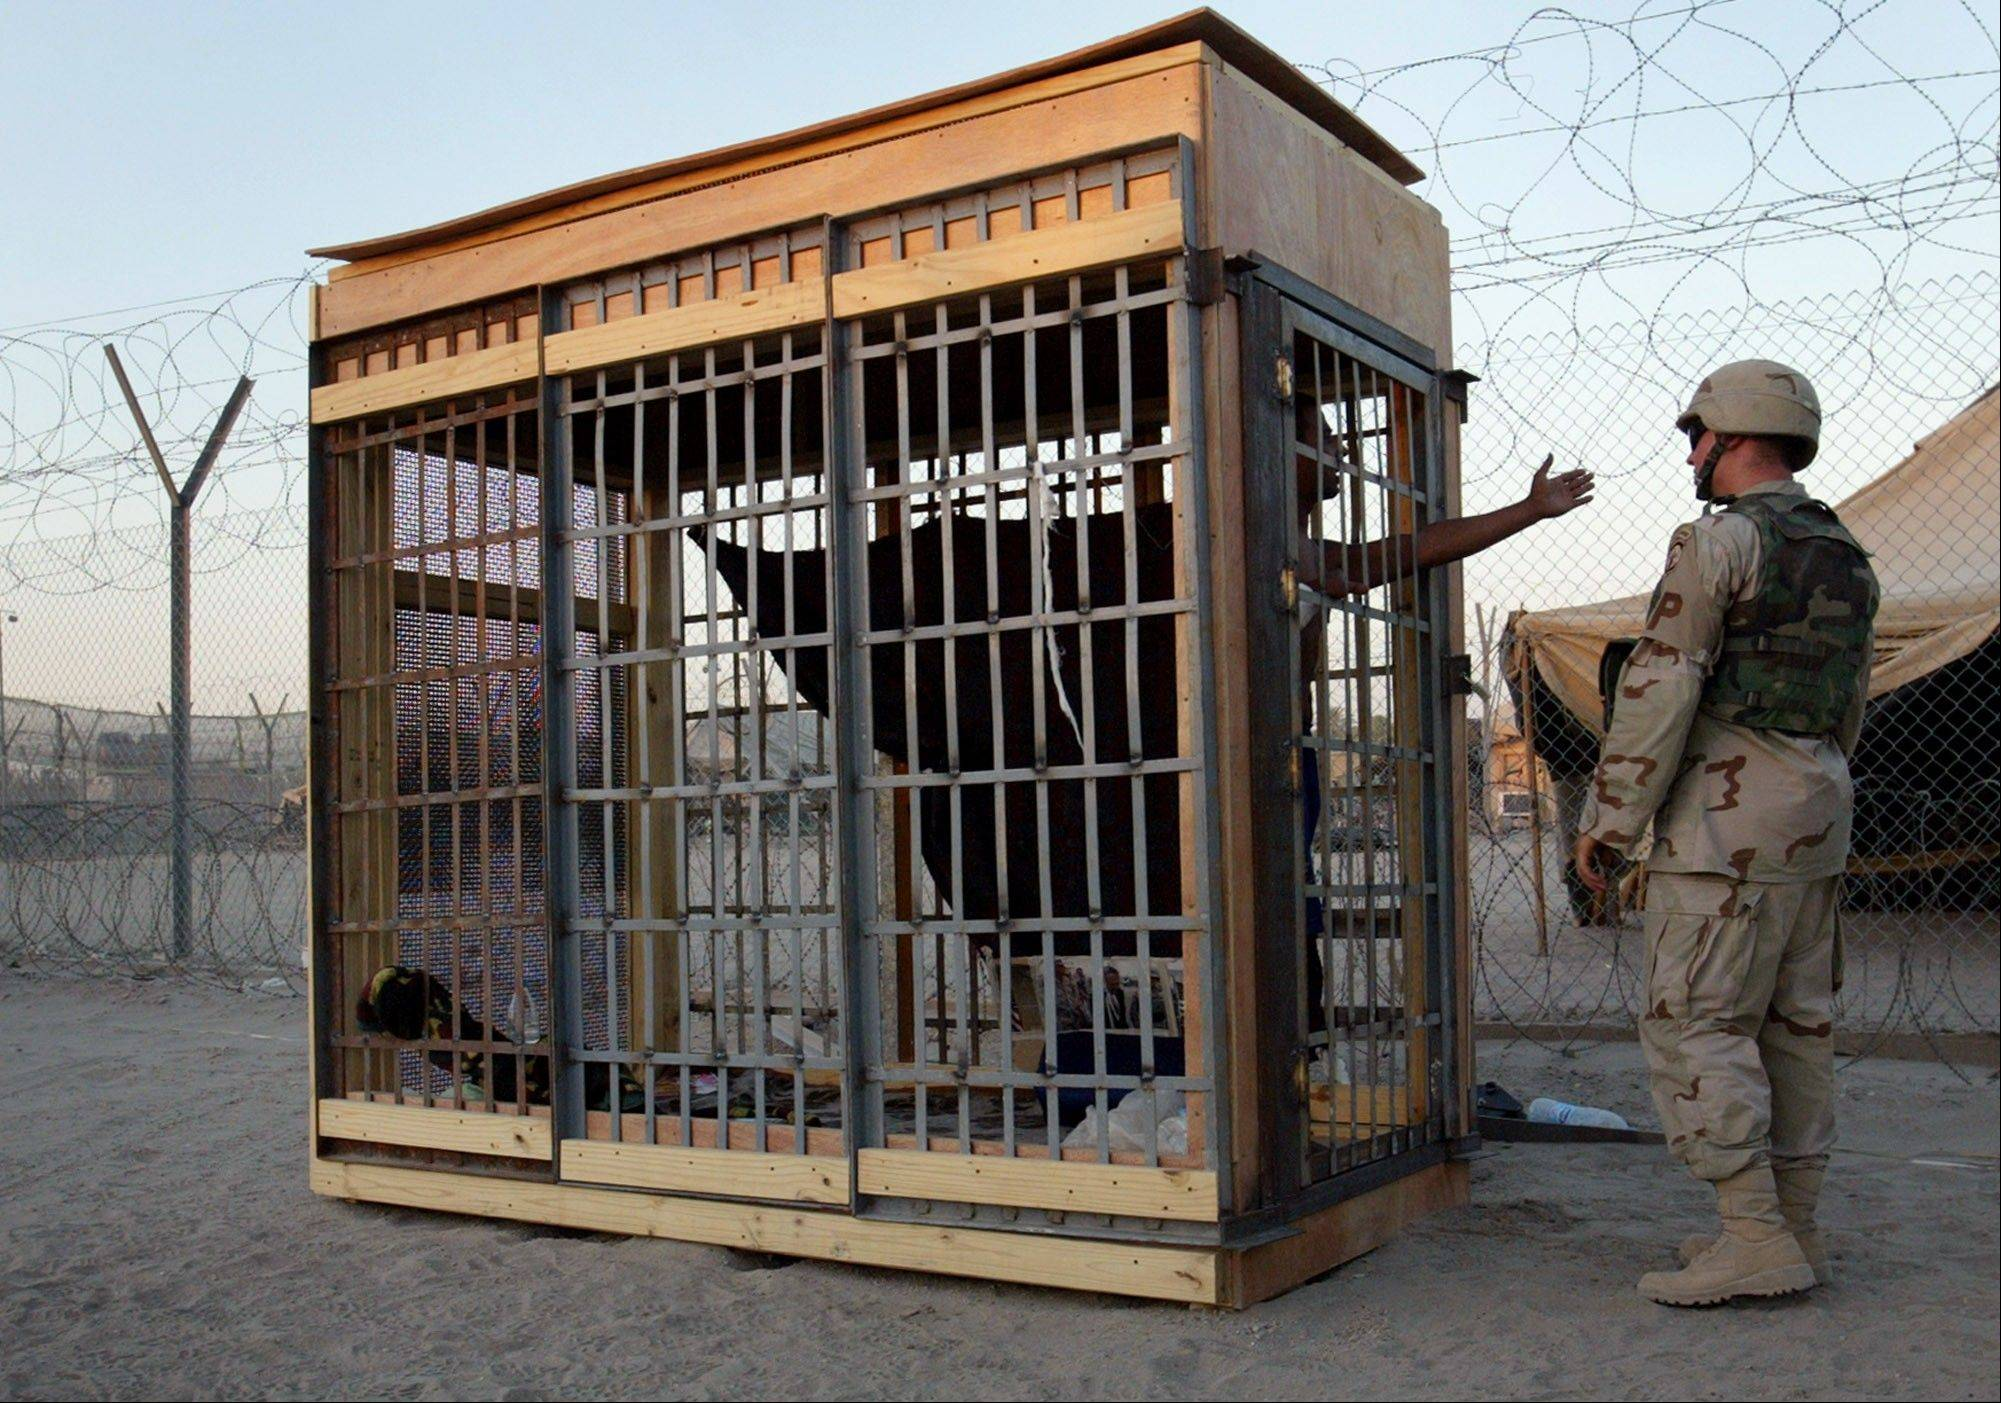 FILE - A detainee in an outdoor solitary confinement cell talks with a military policeman at the Abu Ghraib prison on the outskirts of Baghdad, Iraq on Tuesday, June 22, 2004.